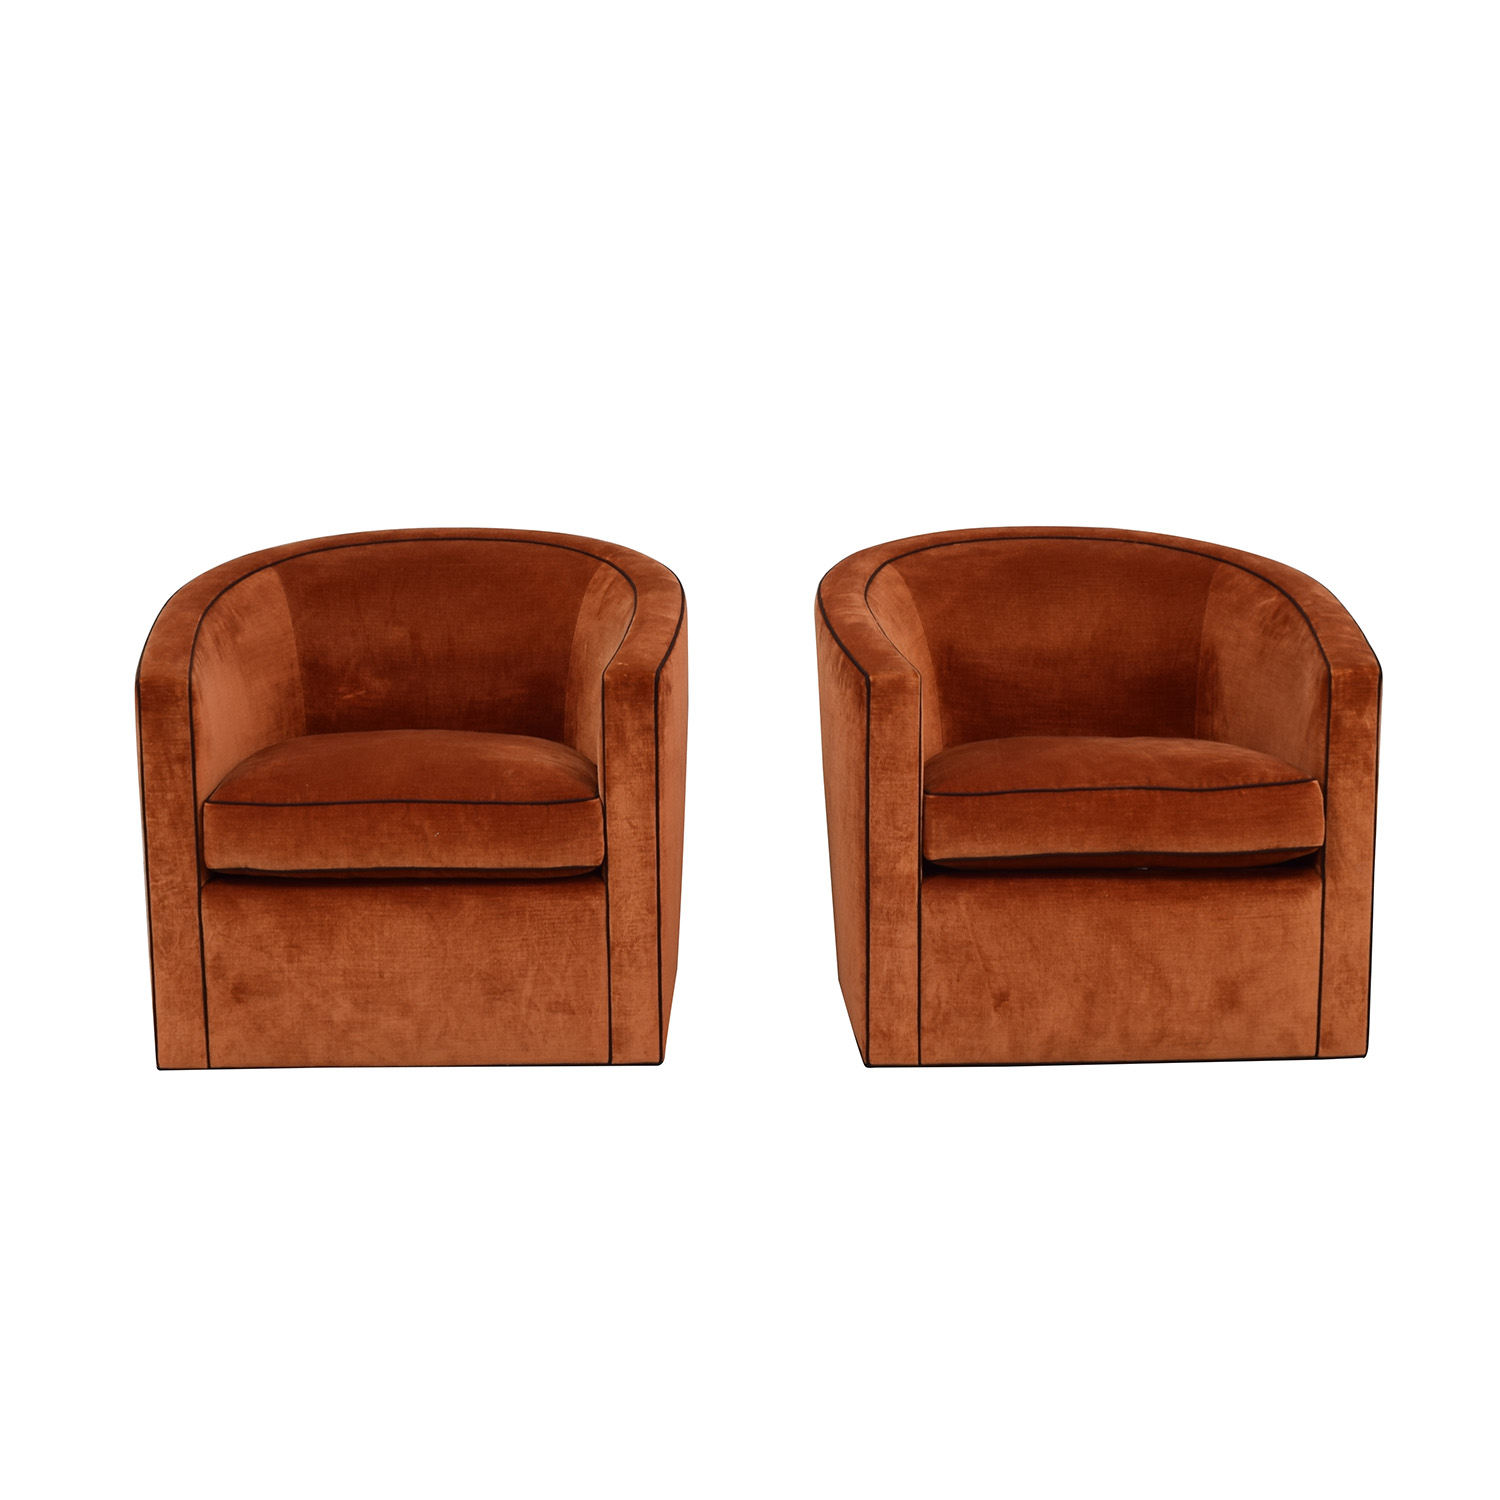 A Rudin A Rudin Custom Orange Club Chairs Accent Chairs